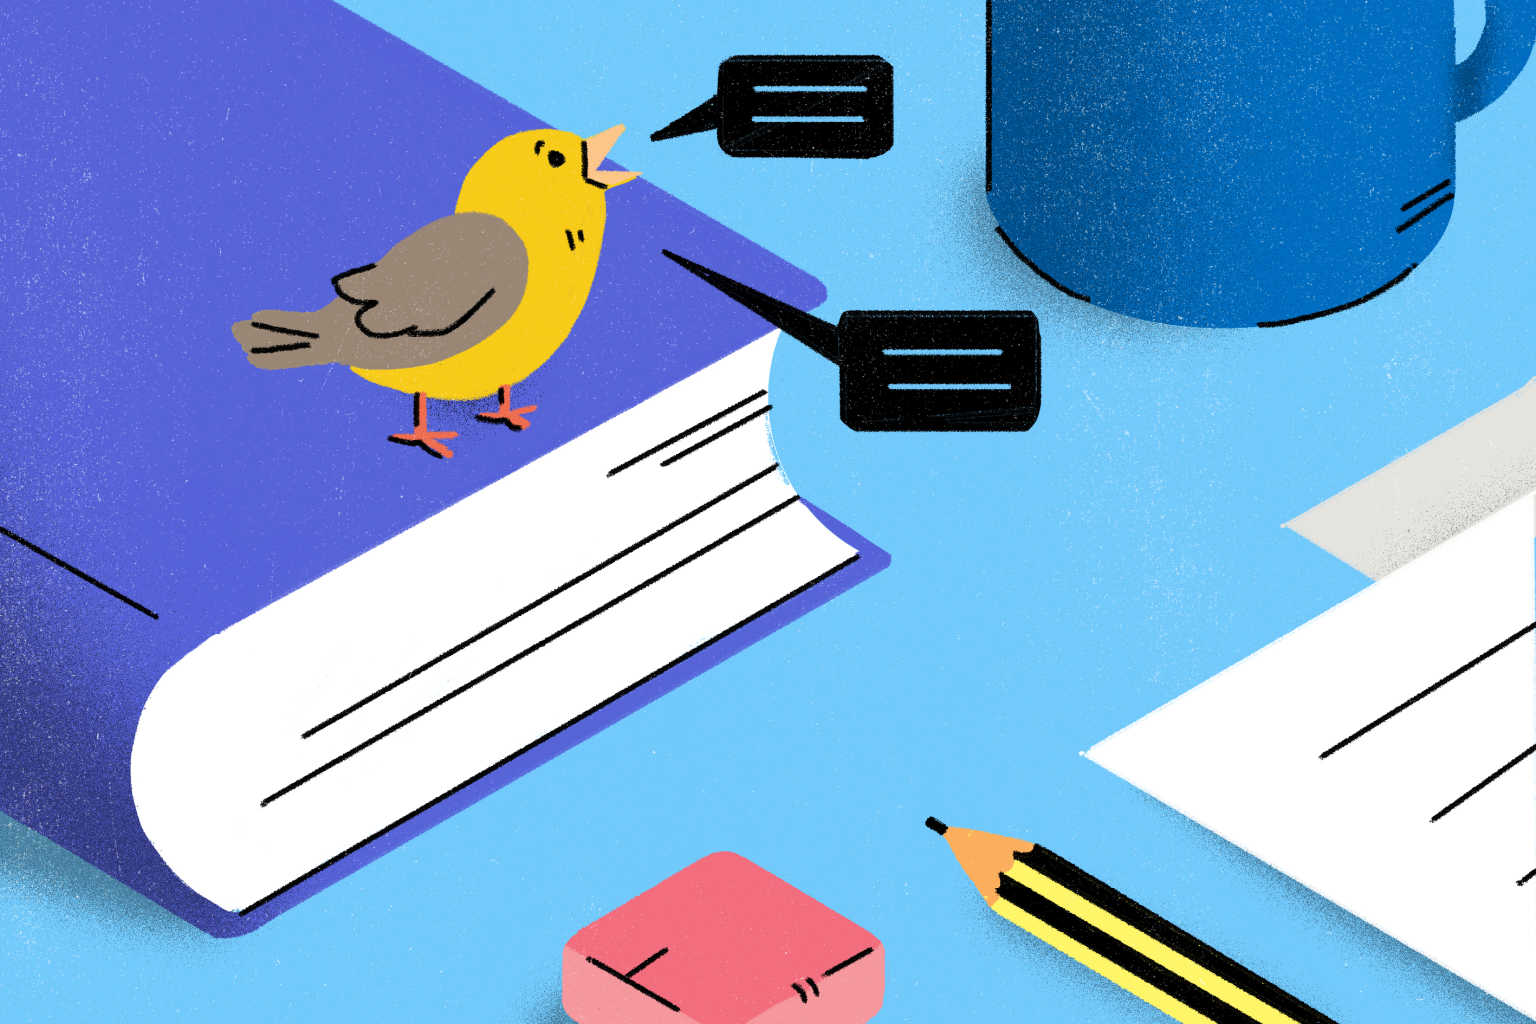 twitter-bird-tweets-on-book-illustration